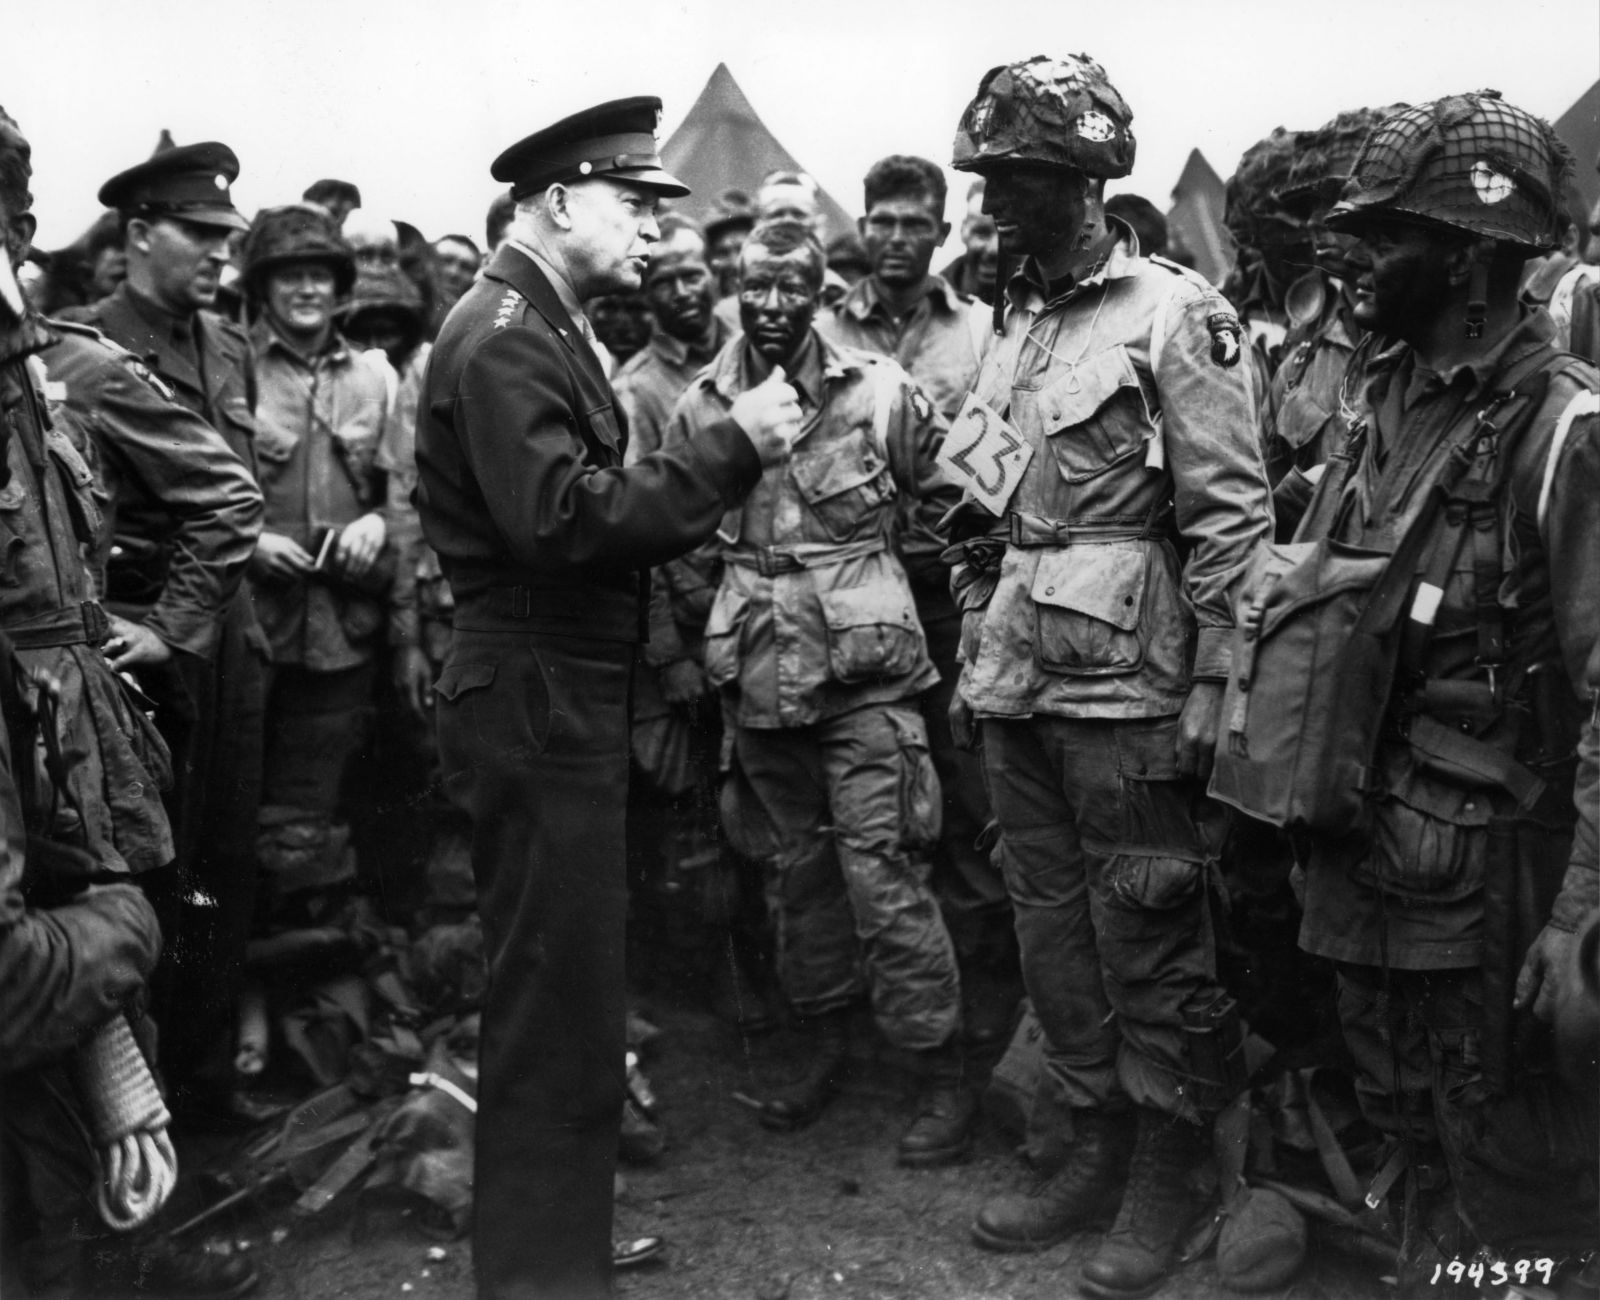 Gen. Dwight D. Eisenhower - D-Day